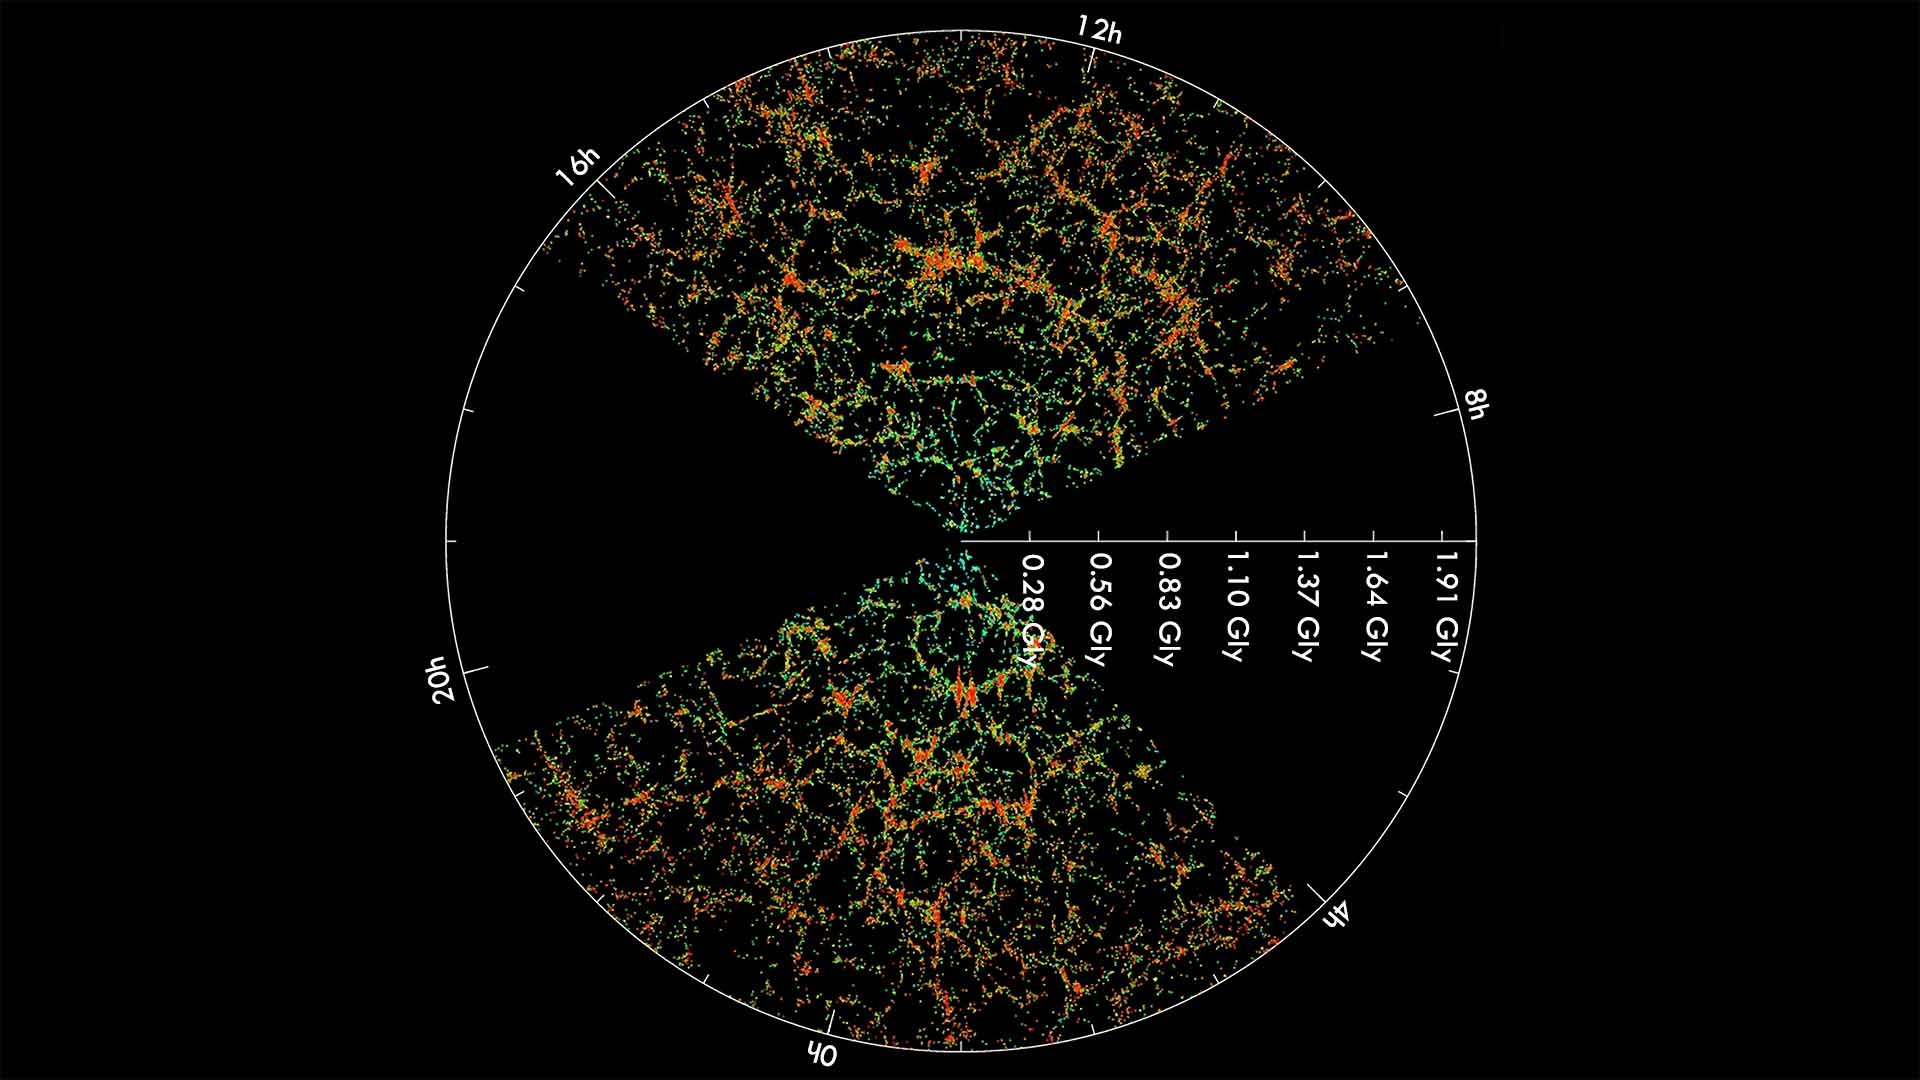 Sloan Digital Sky Survey Slice of the Universe